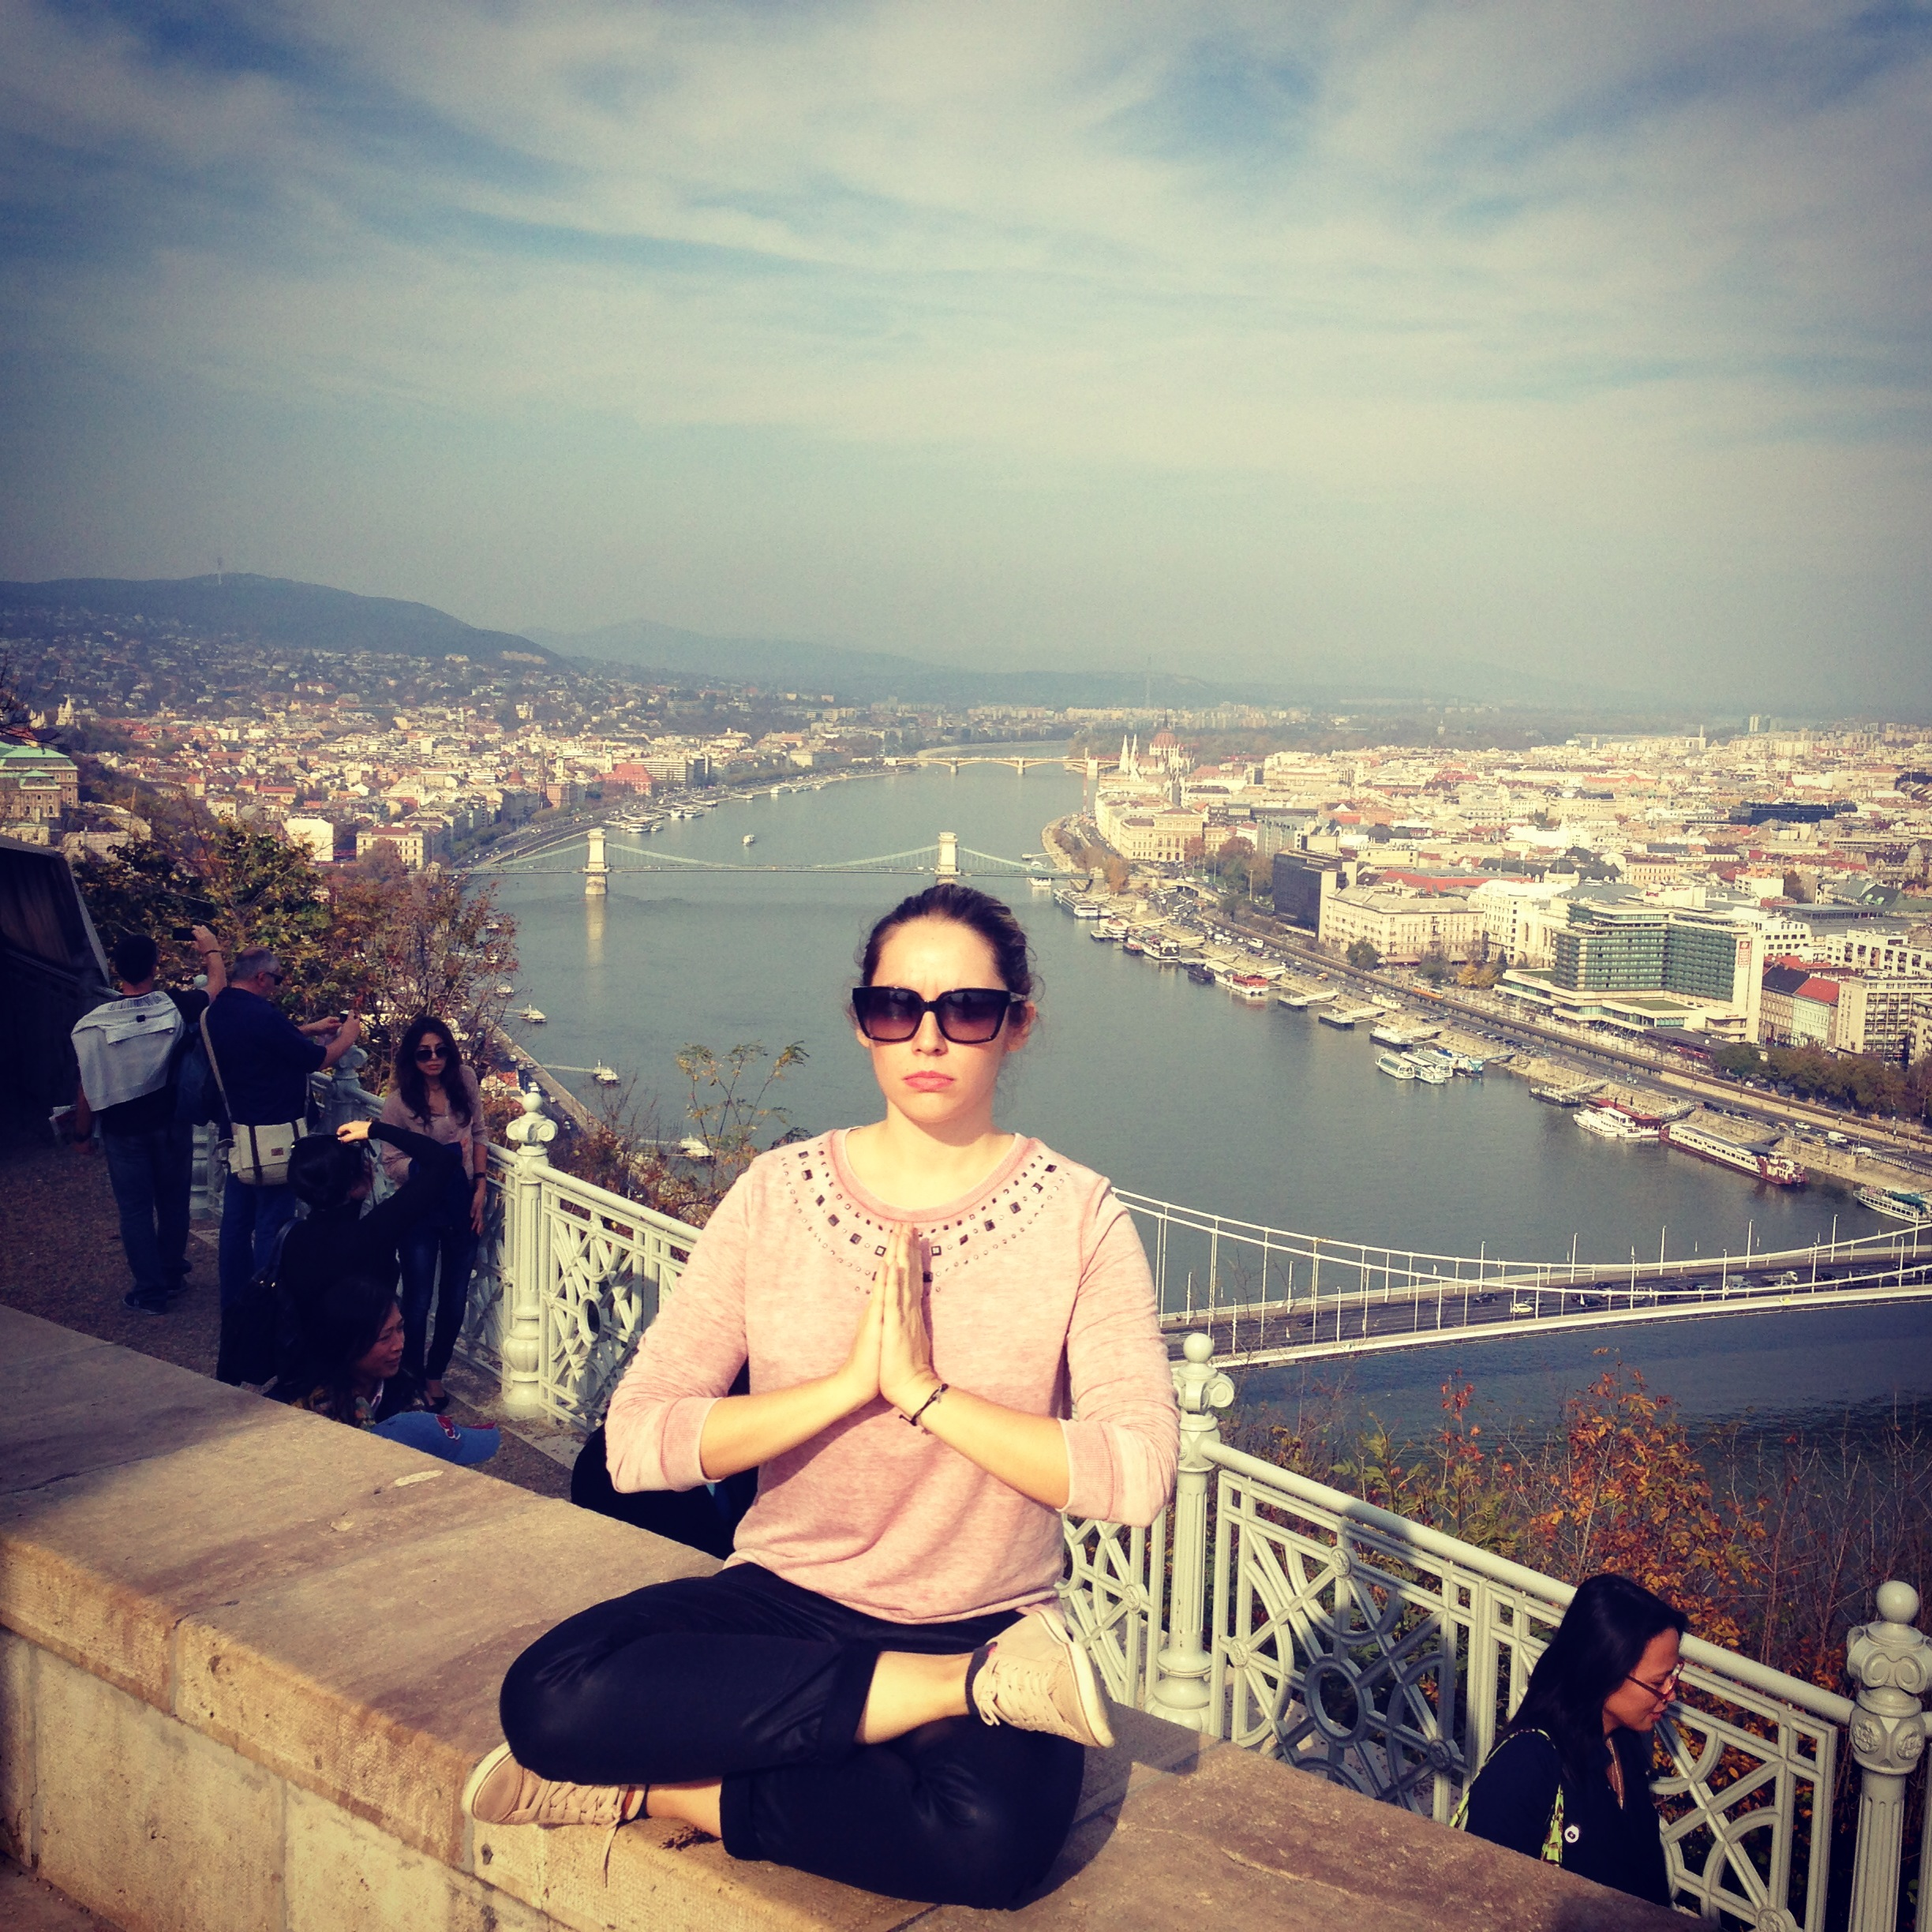 The Little Buddah in Buda!